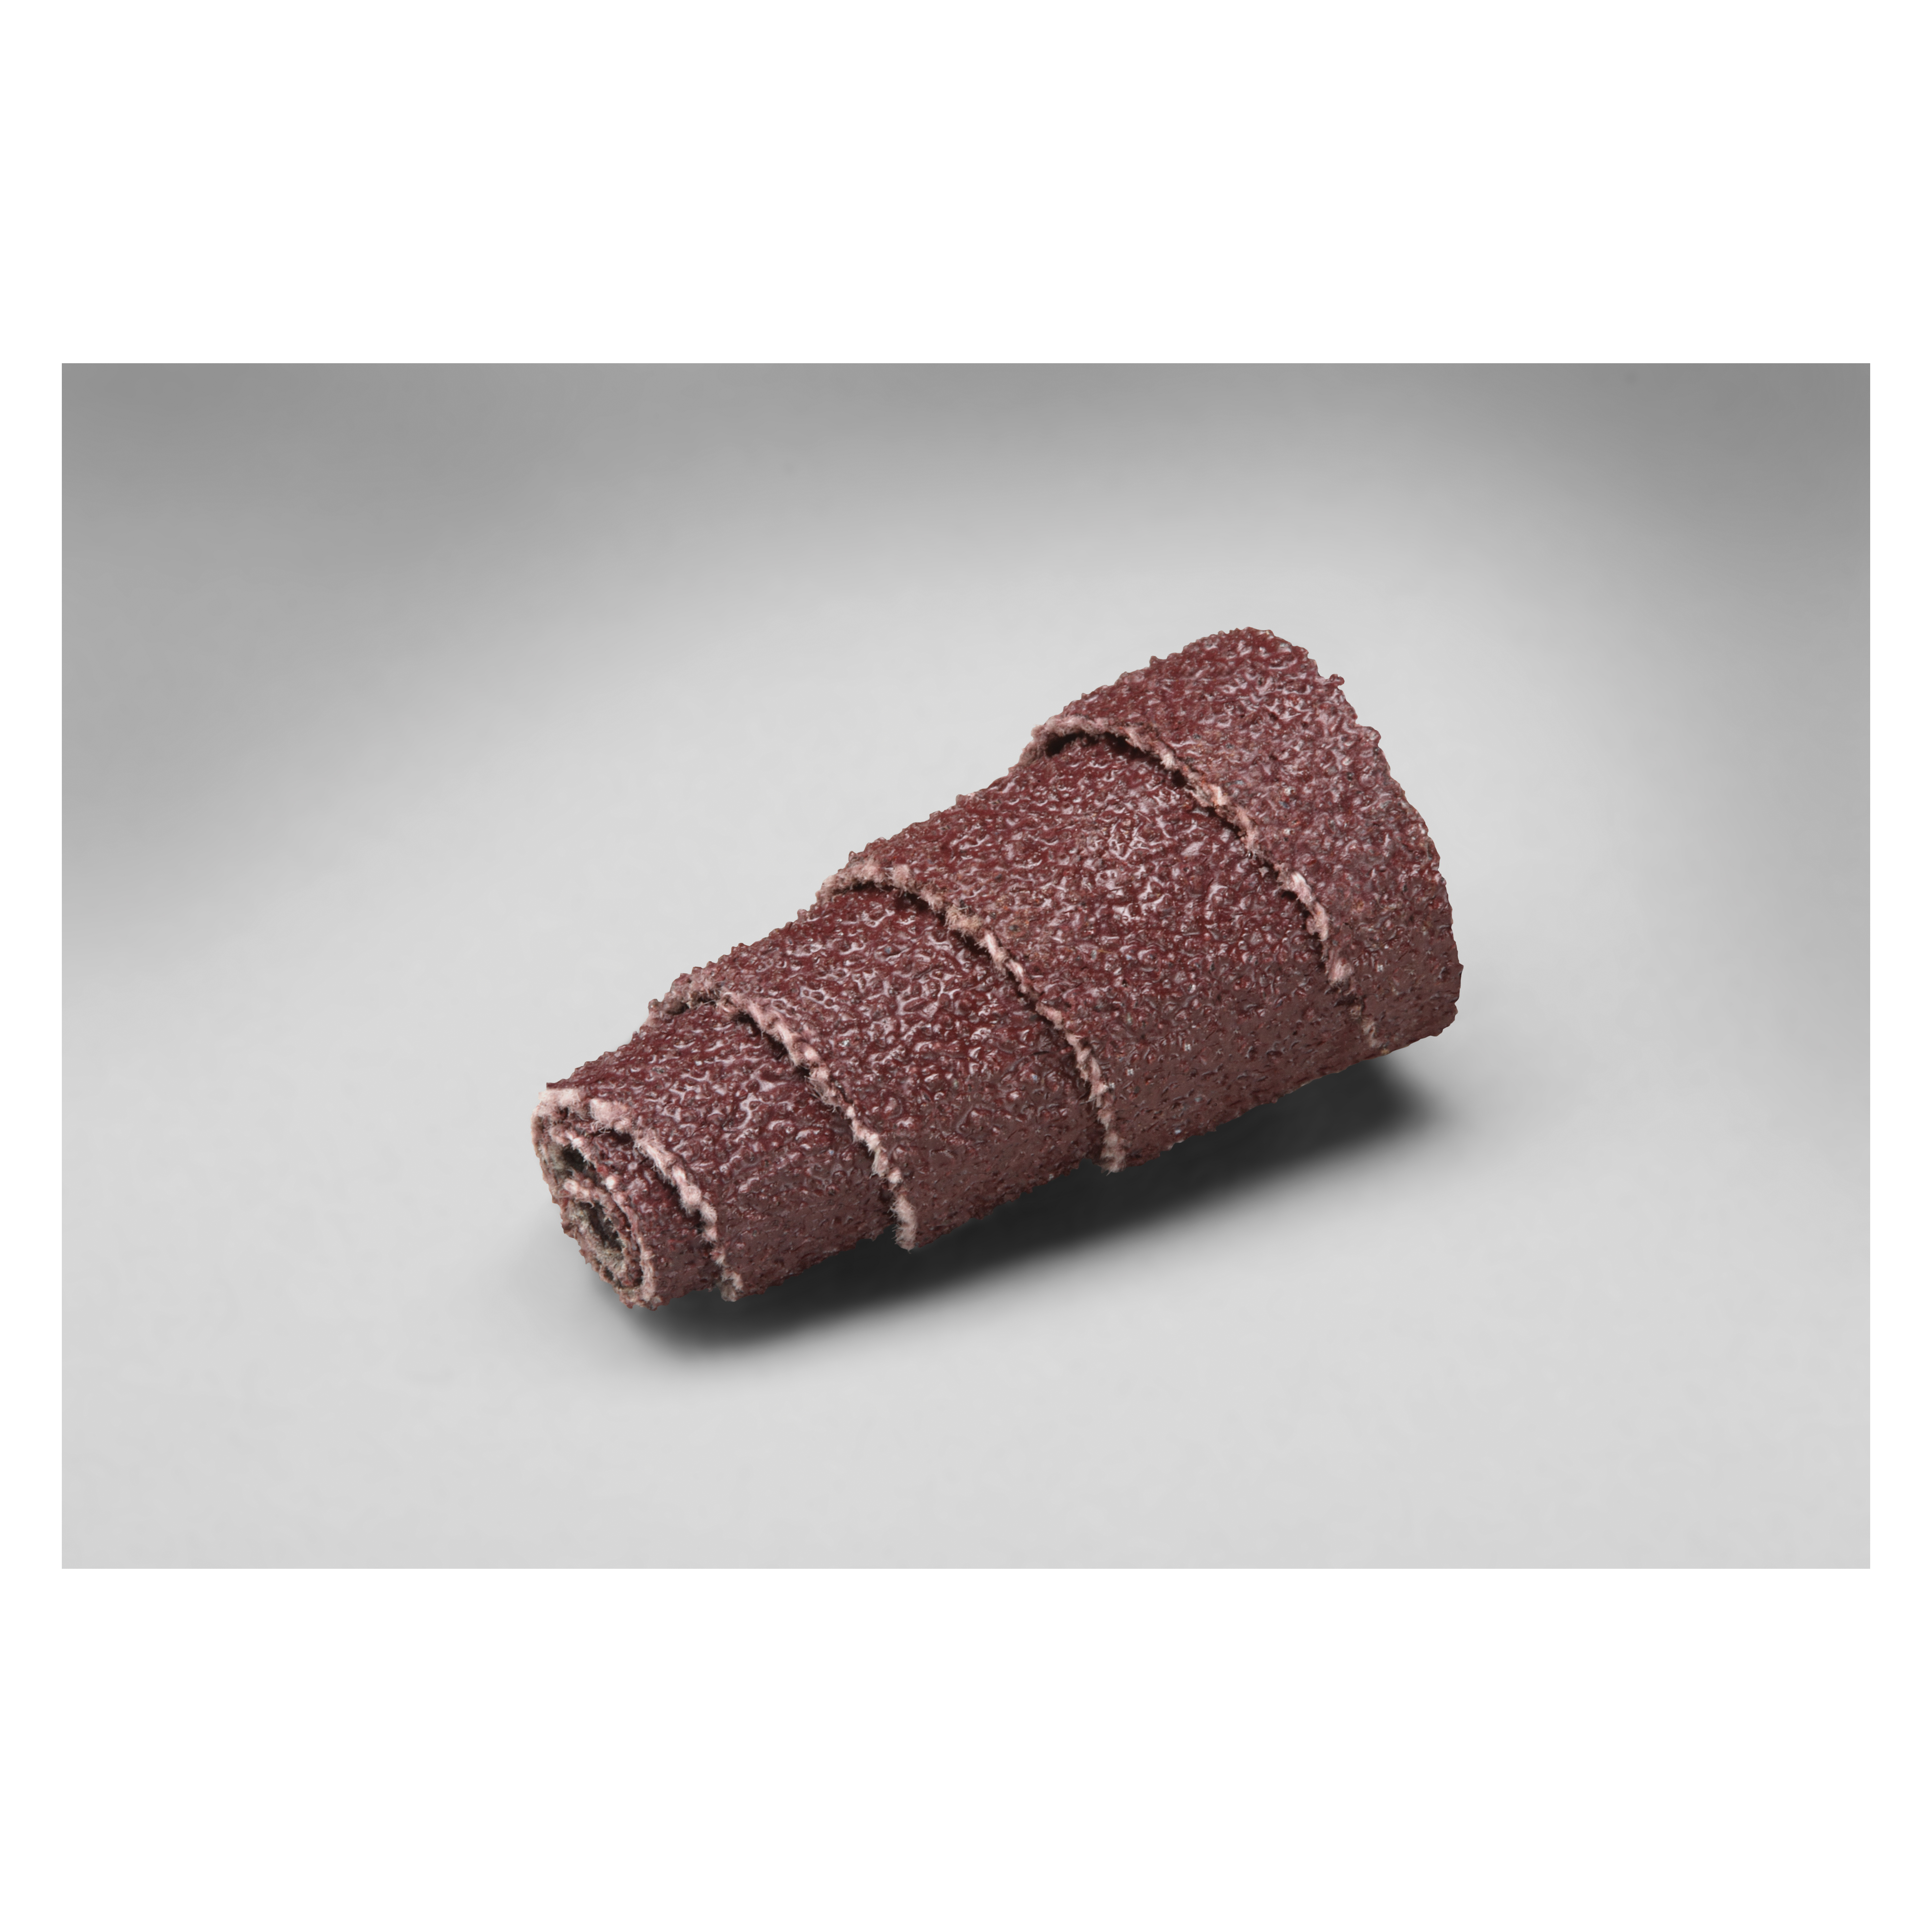 3M™ 051144-97257 Coated Full Tapered Cartridge Roll, 1/2 in Dia x 1 in OAL, 1/8 in Pilot Hole, 60 Grit, Aluminum Oxide Abrasive